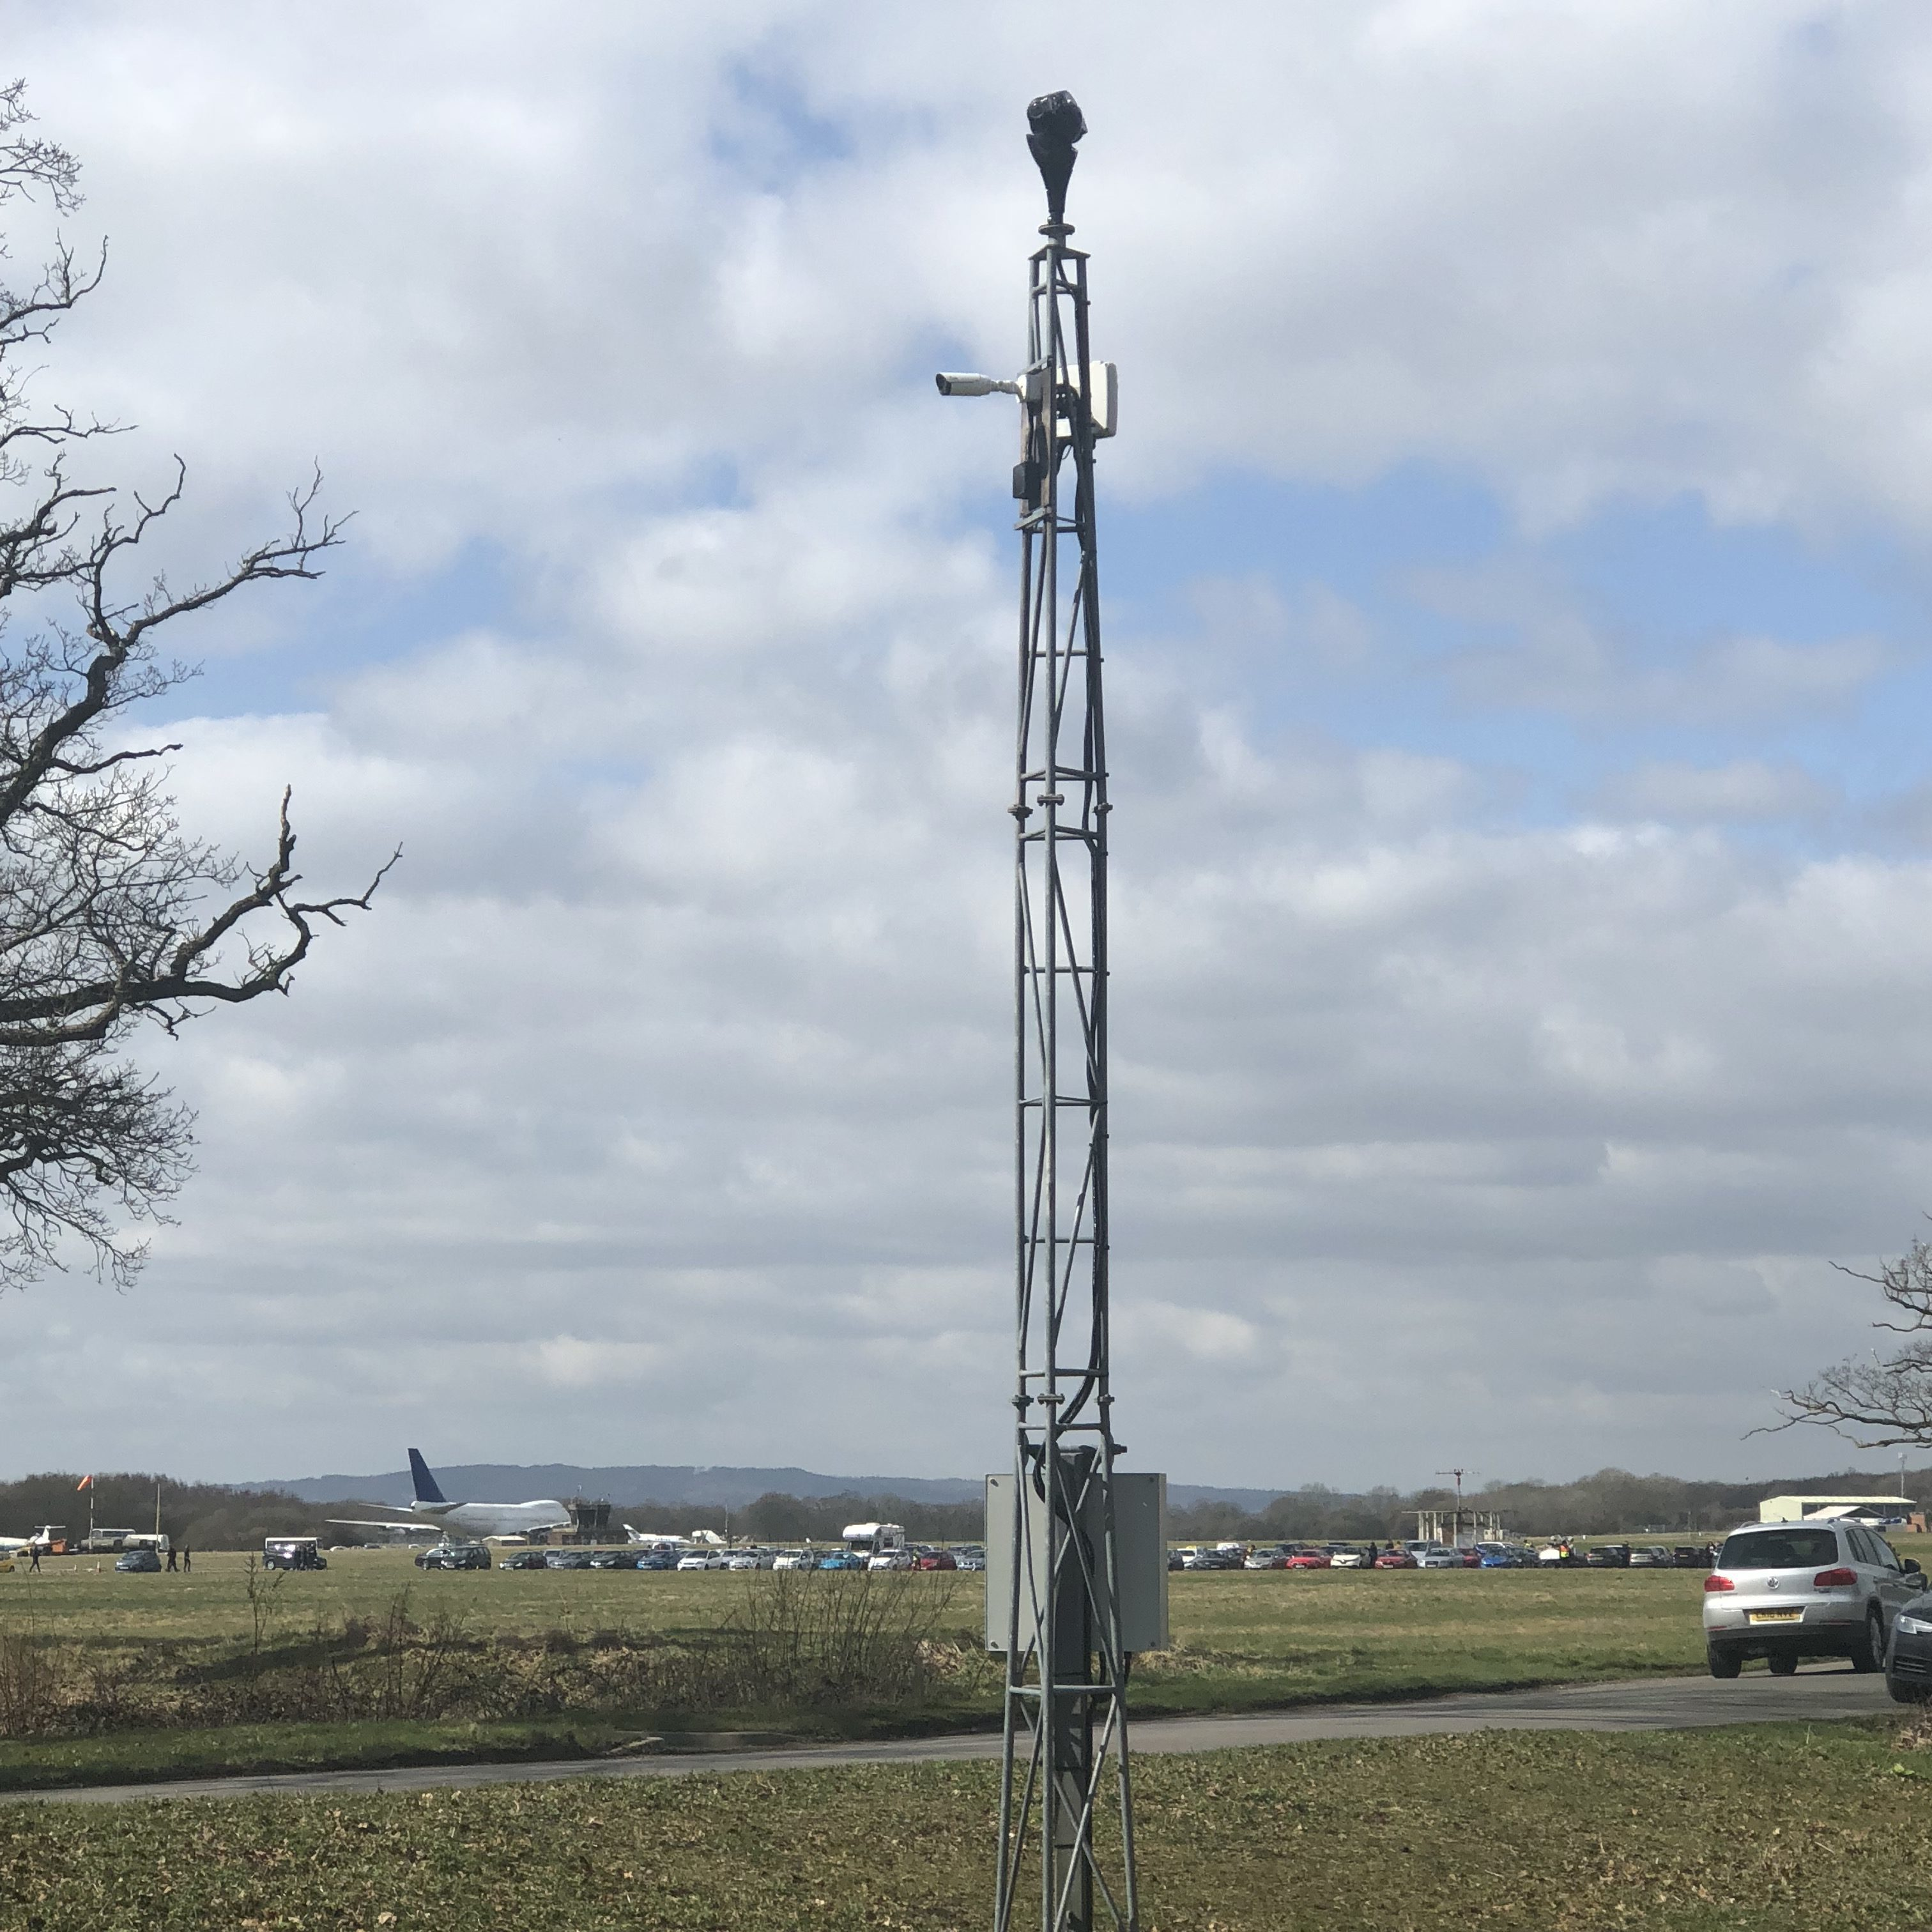 Redvision's cameras help to protect Dunsfold Park airfield.